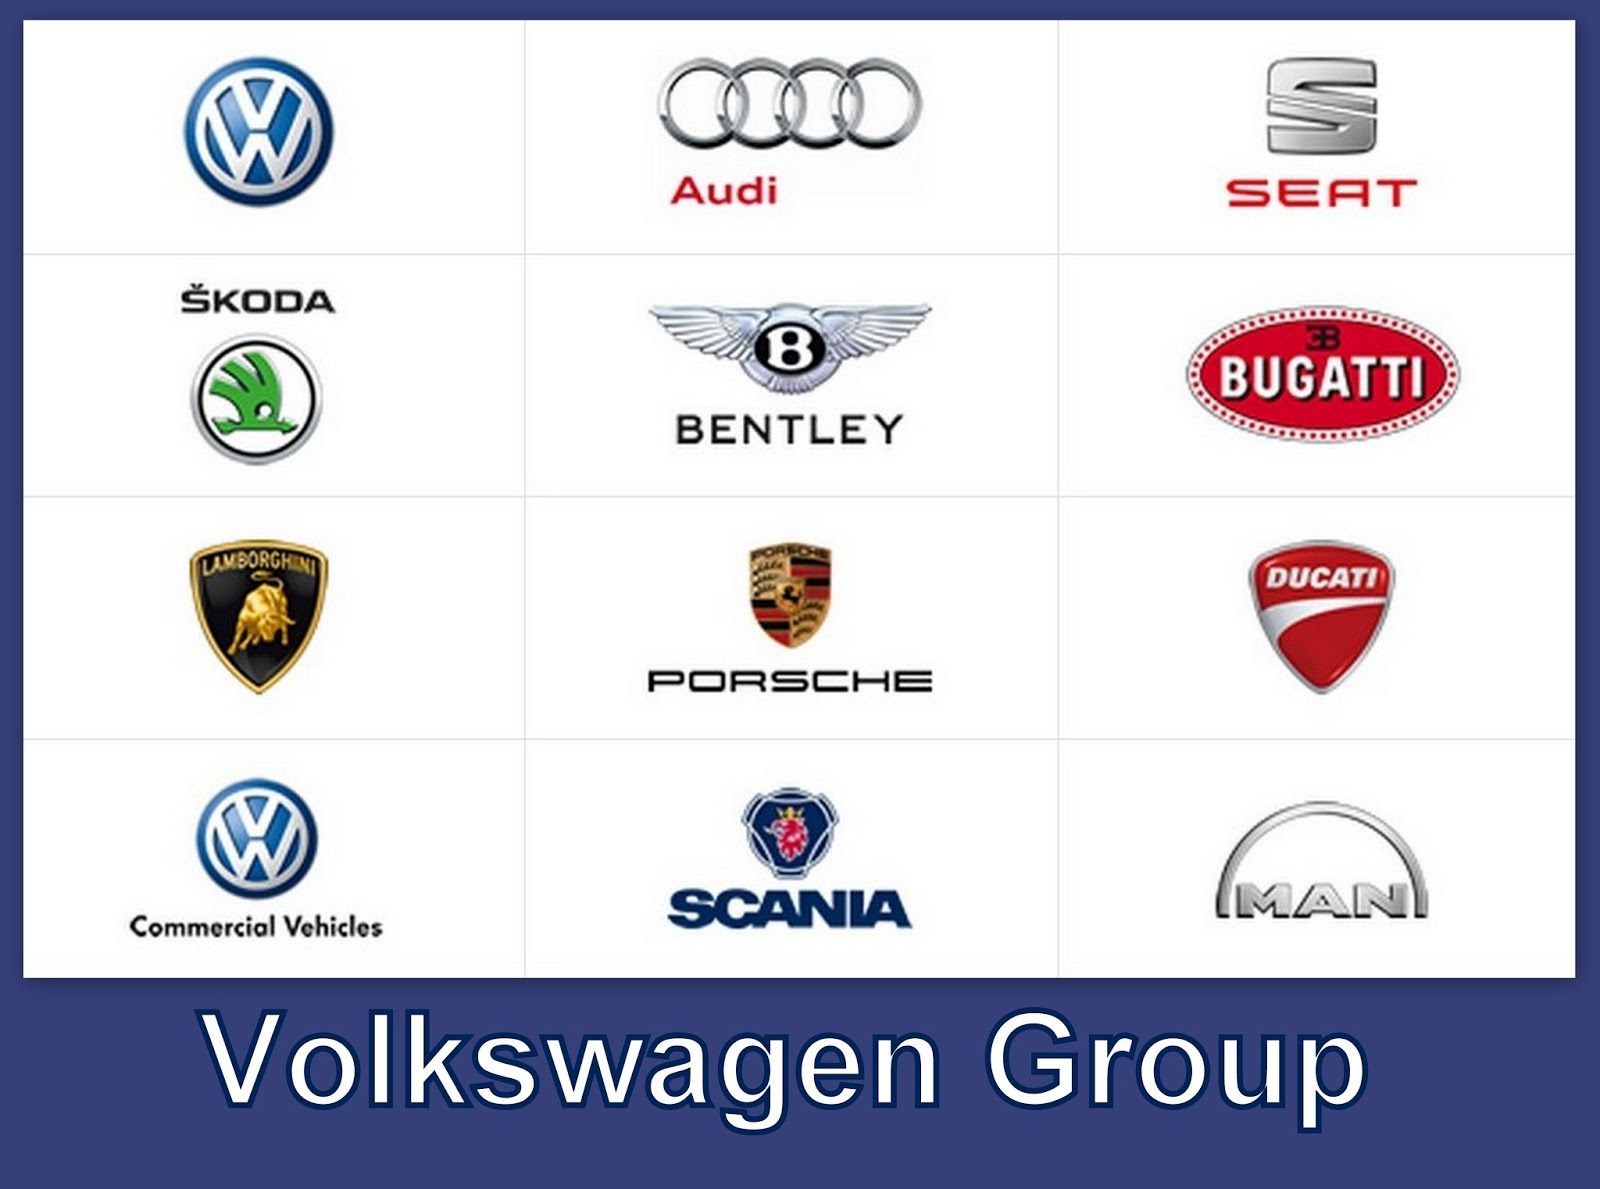 vw group successfully managing  brands   search    wheelsman